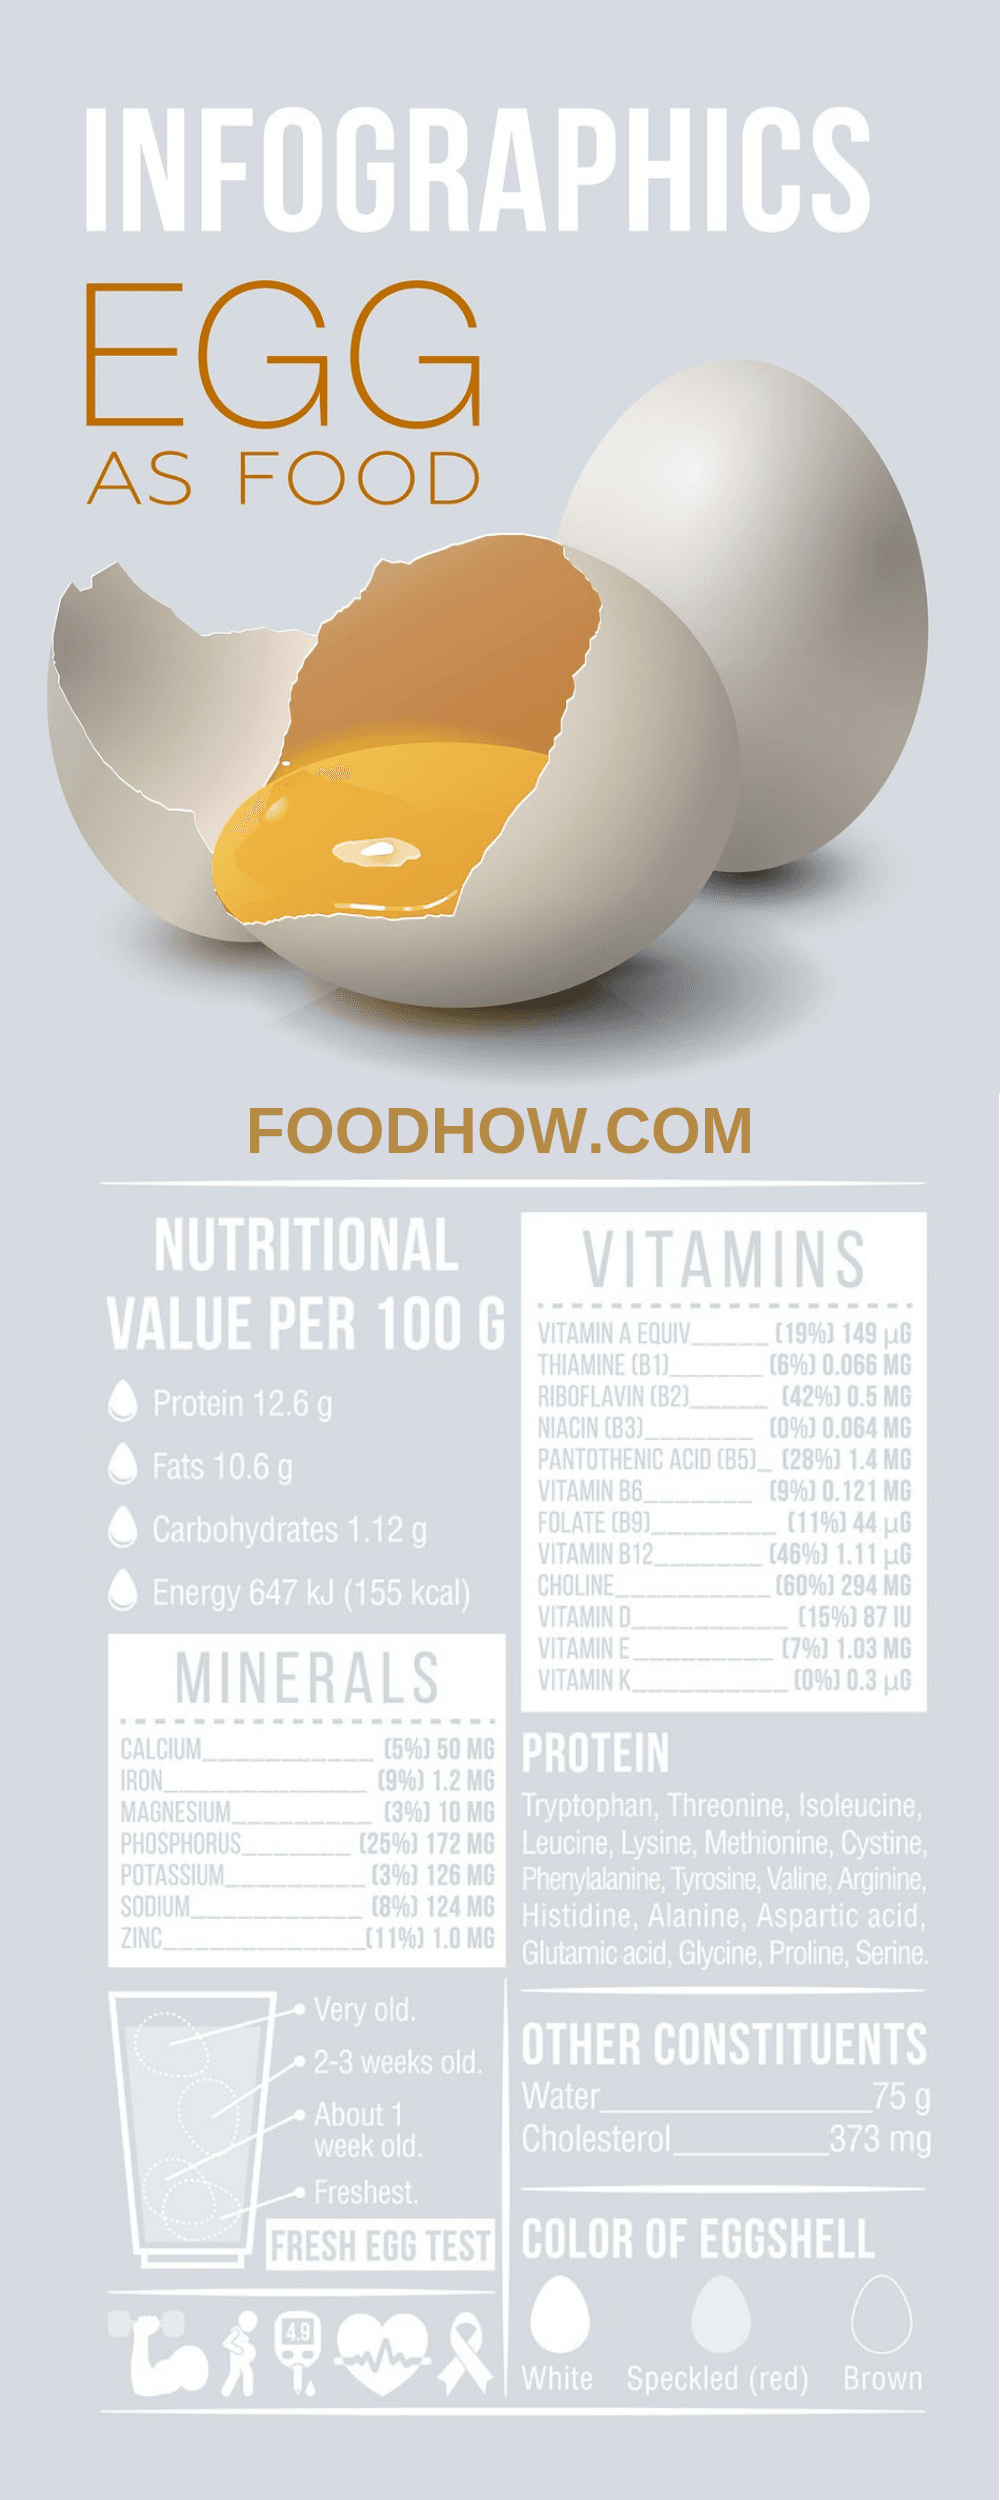 Nutritional information of an egg